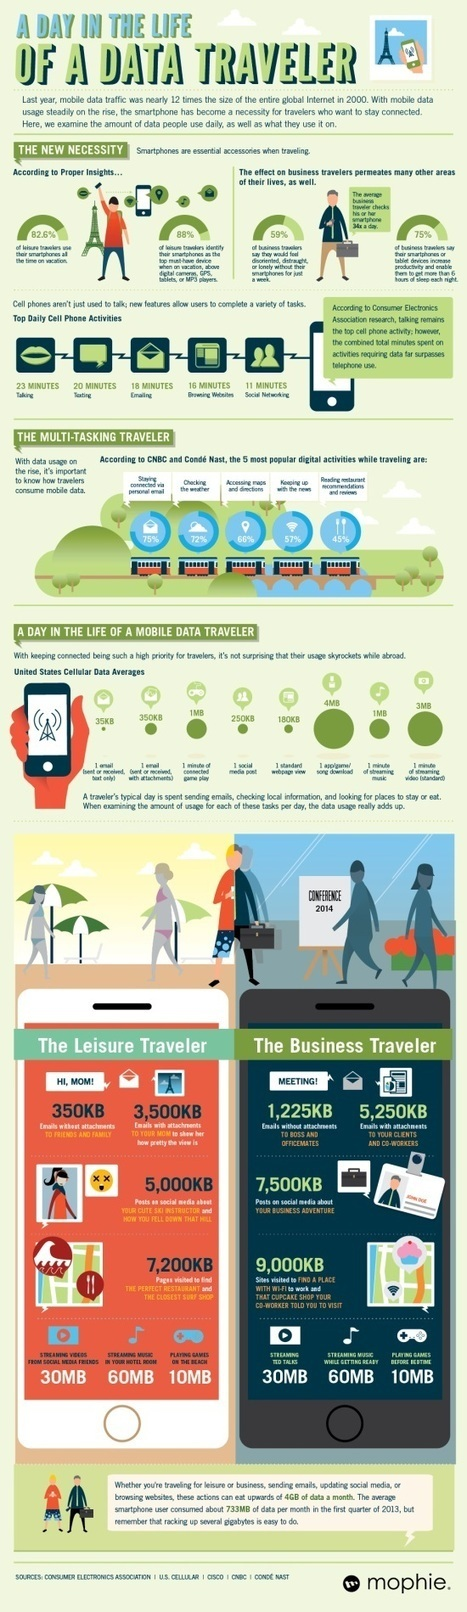 A day in the life of mobile travel data [INFOGRAPHIC] | Tourisme Tendances | Scoop.it